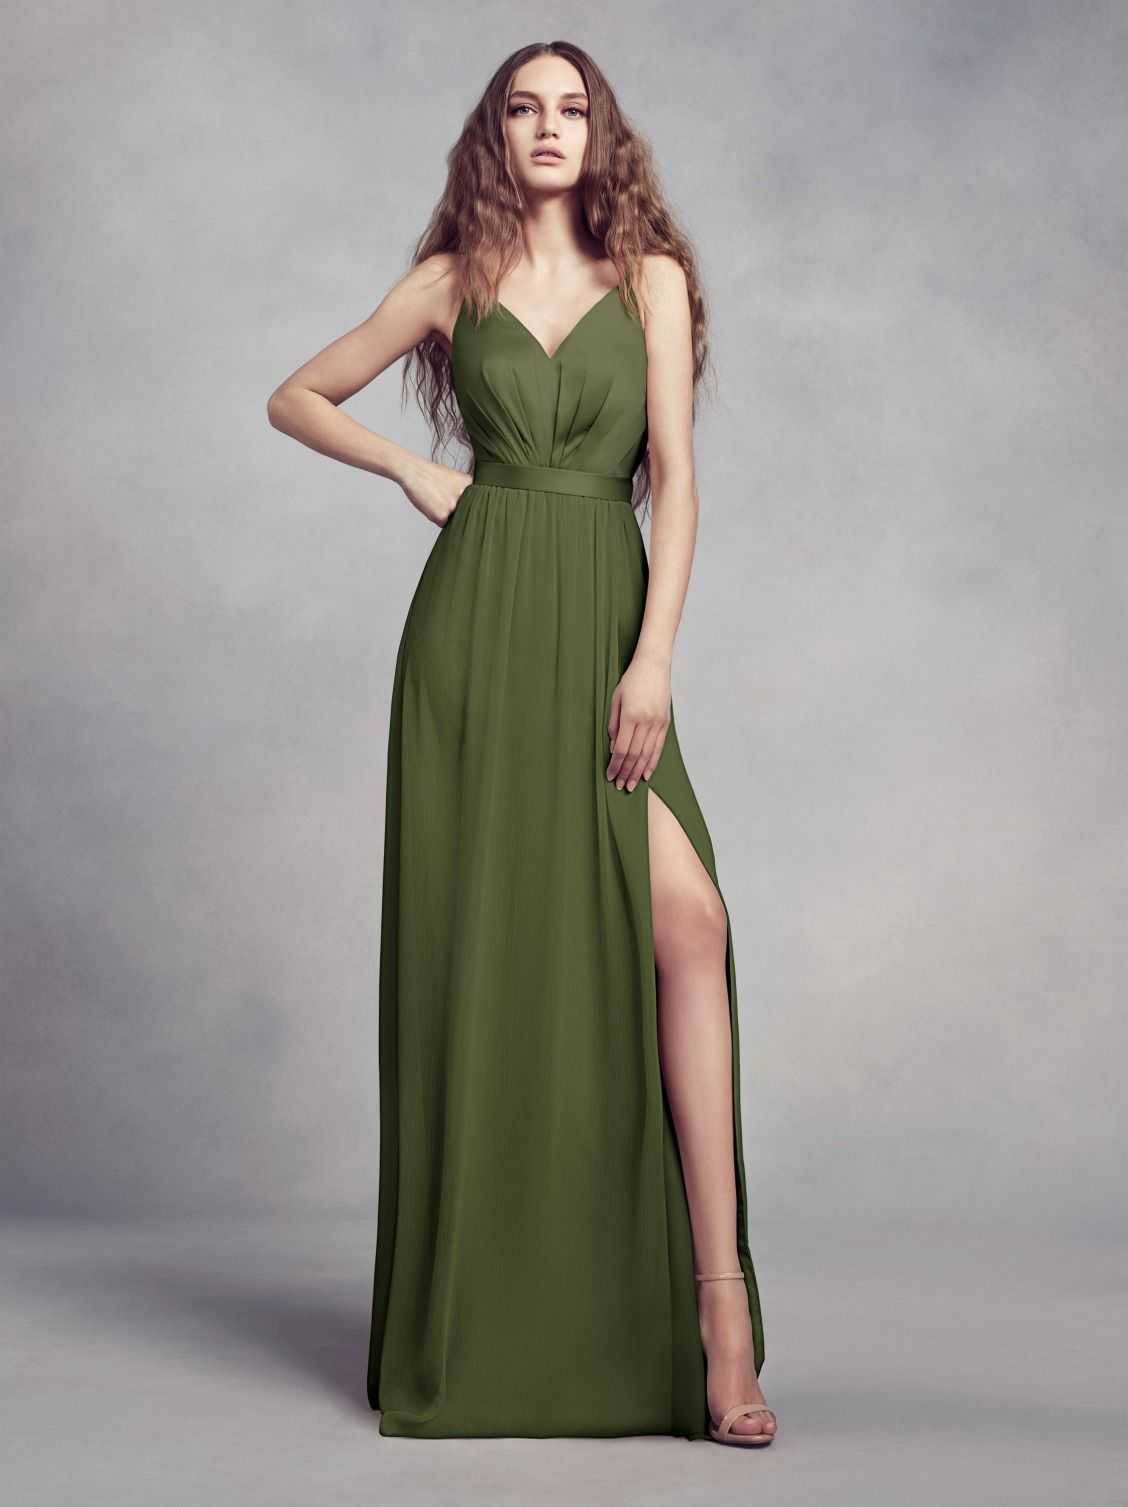 The newest color from Vera Wang an olive bridesmaid dress for the